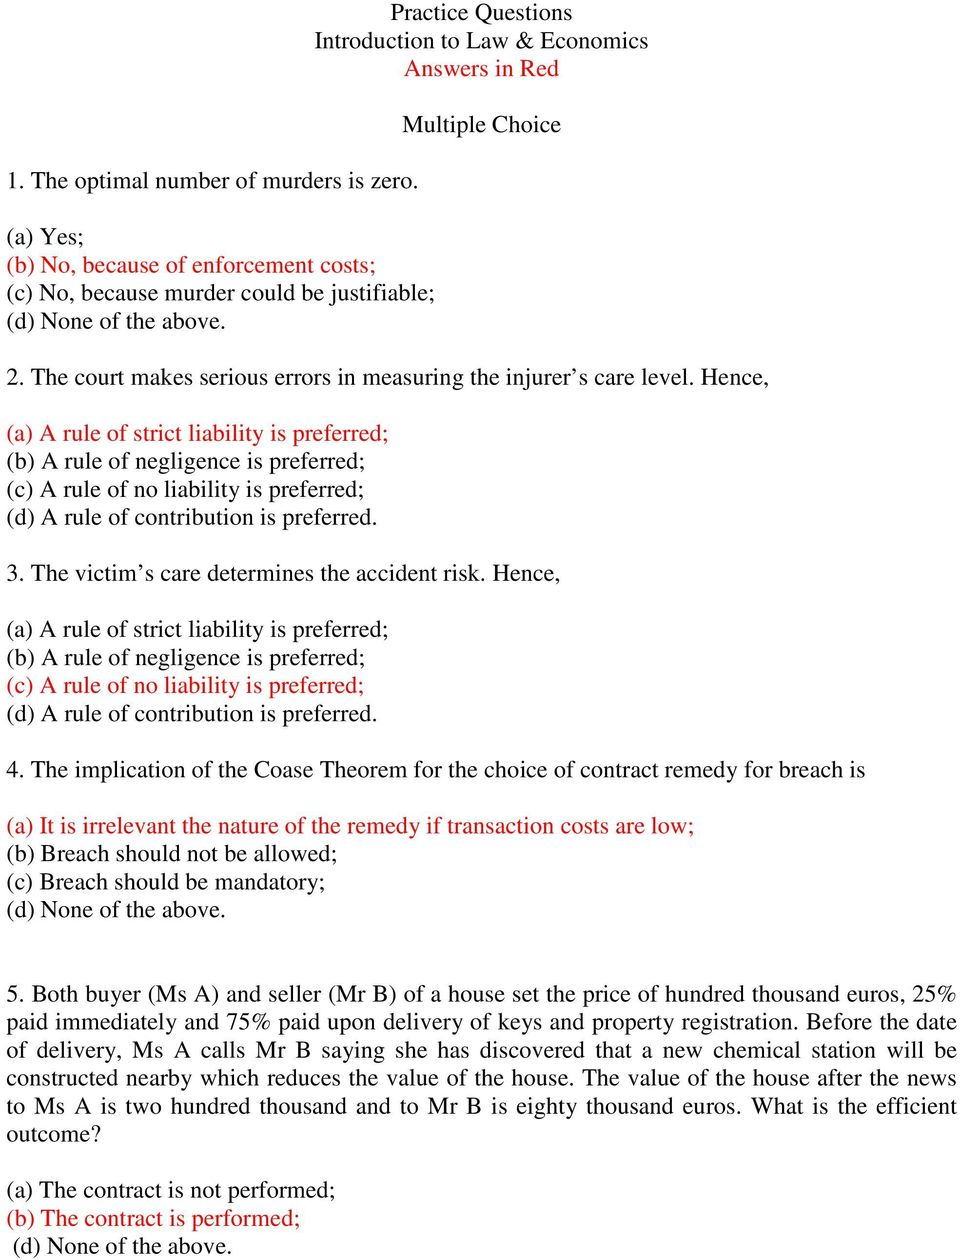 Practice Questions Introduction to Law & Economics Answers in Red